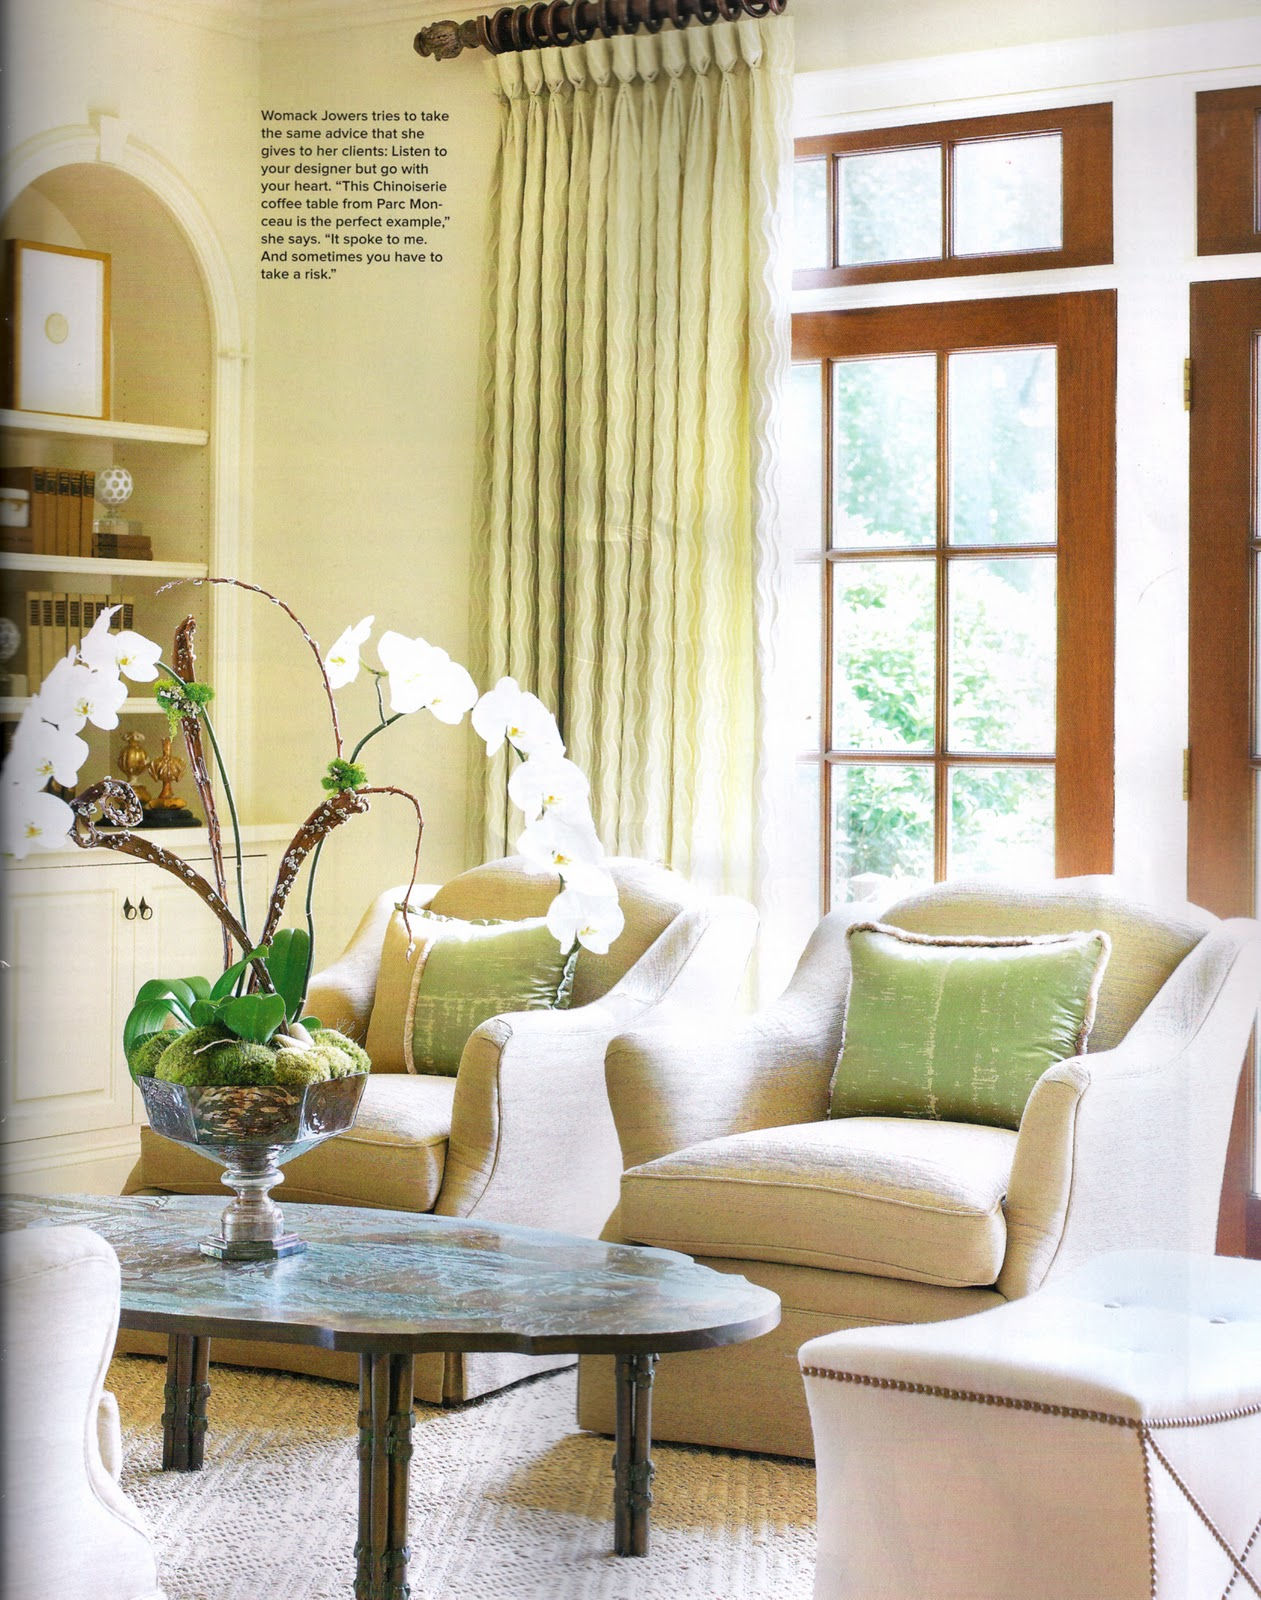 To See Read More About This Home And Several Others Pick Up Your Copy Of The December Issue Atlanta Homes Lifestyles